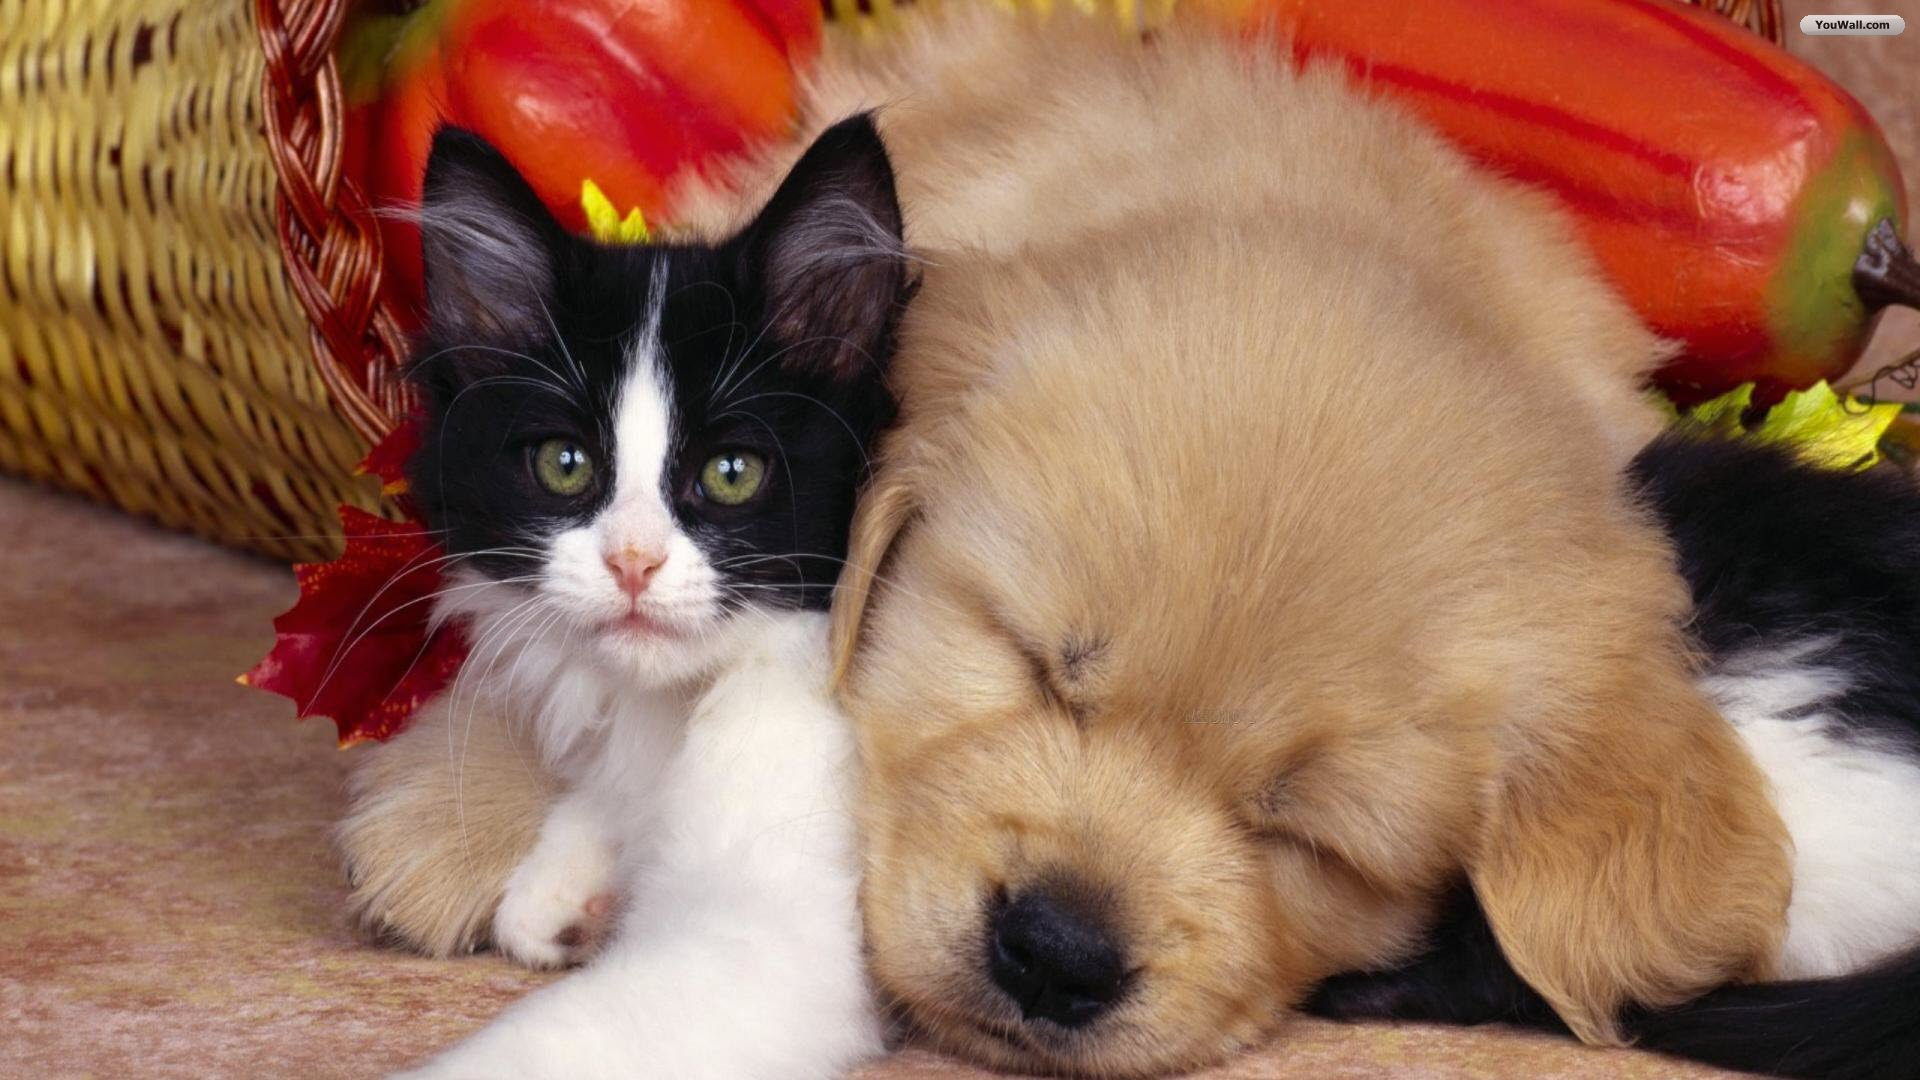 Wallpaper Of Dogs And Cats